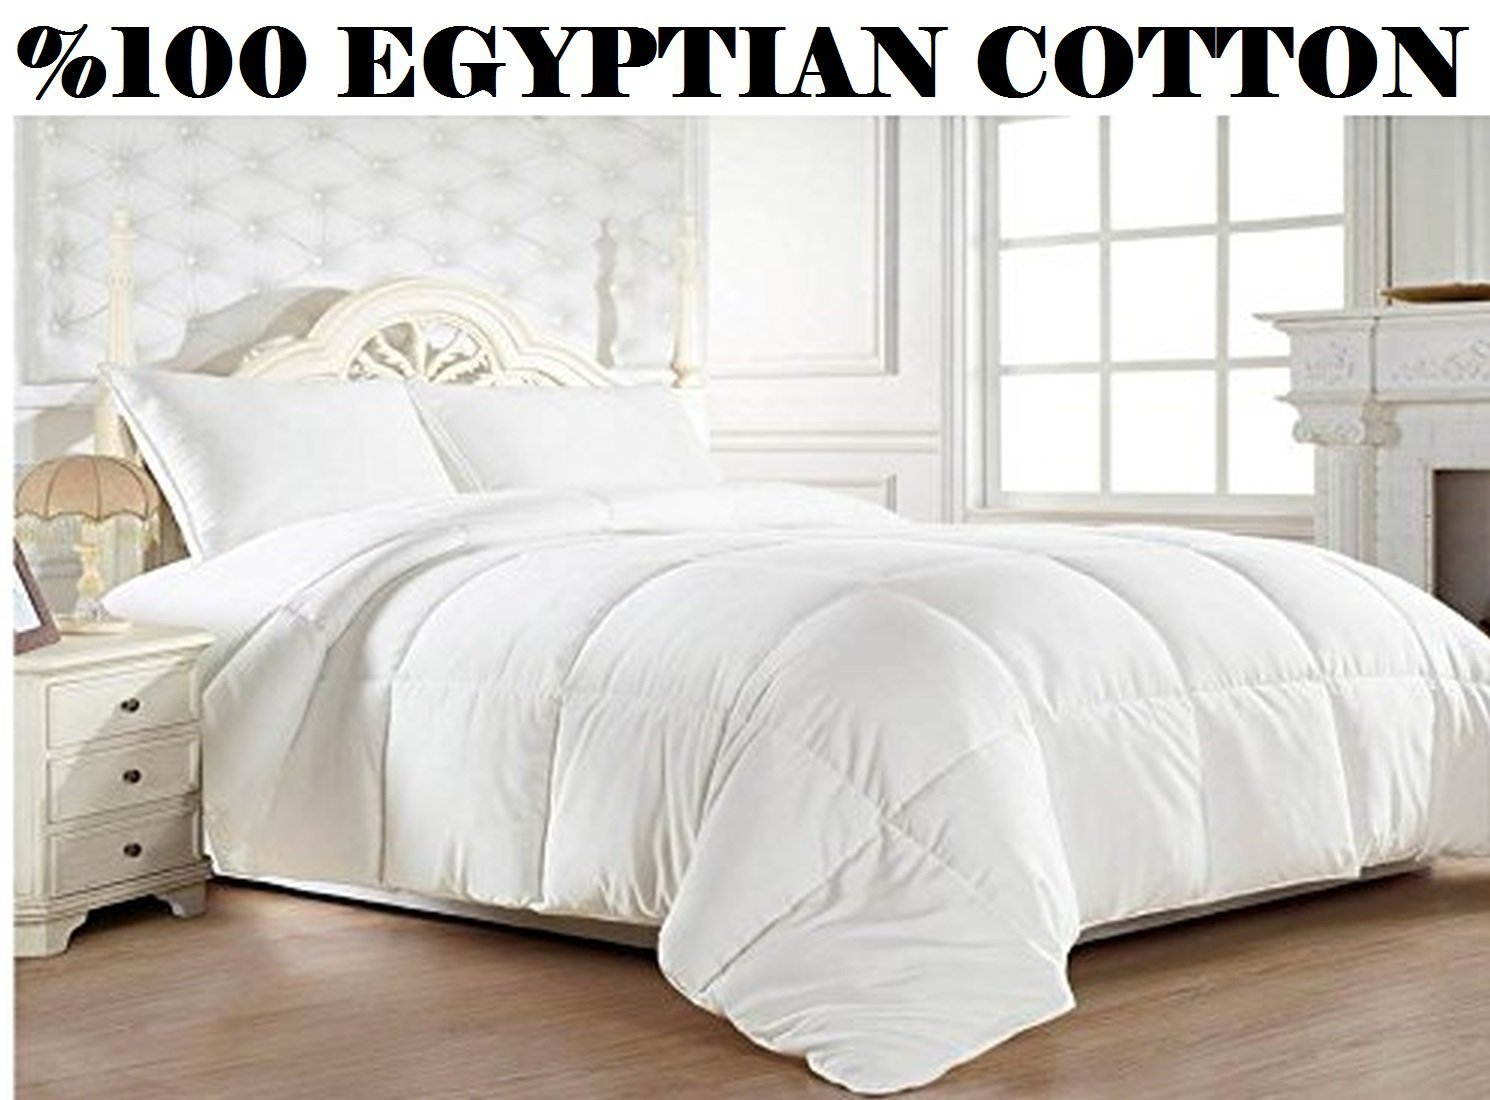 spread set percent cotton comforter sets egyptian s